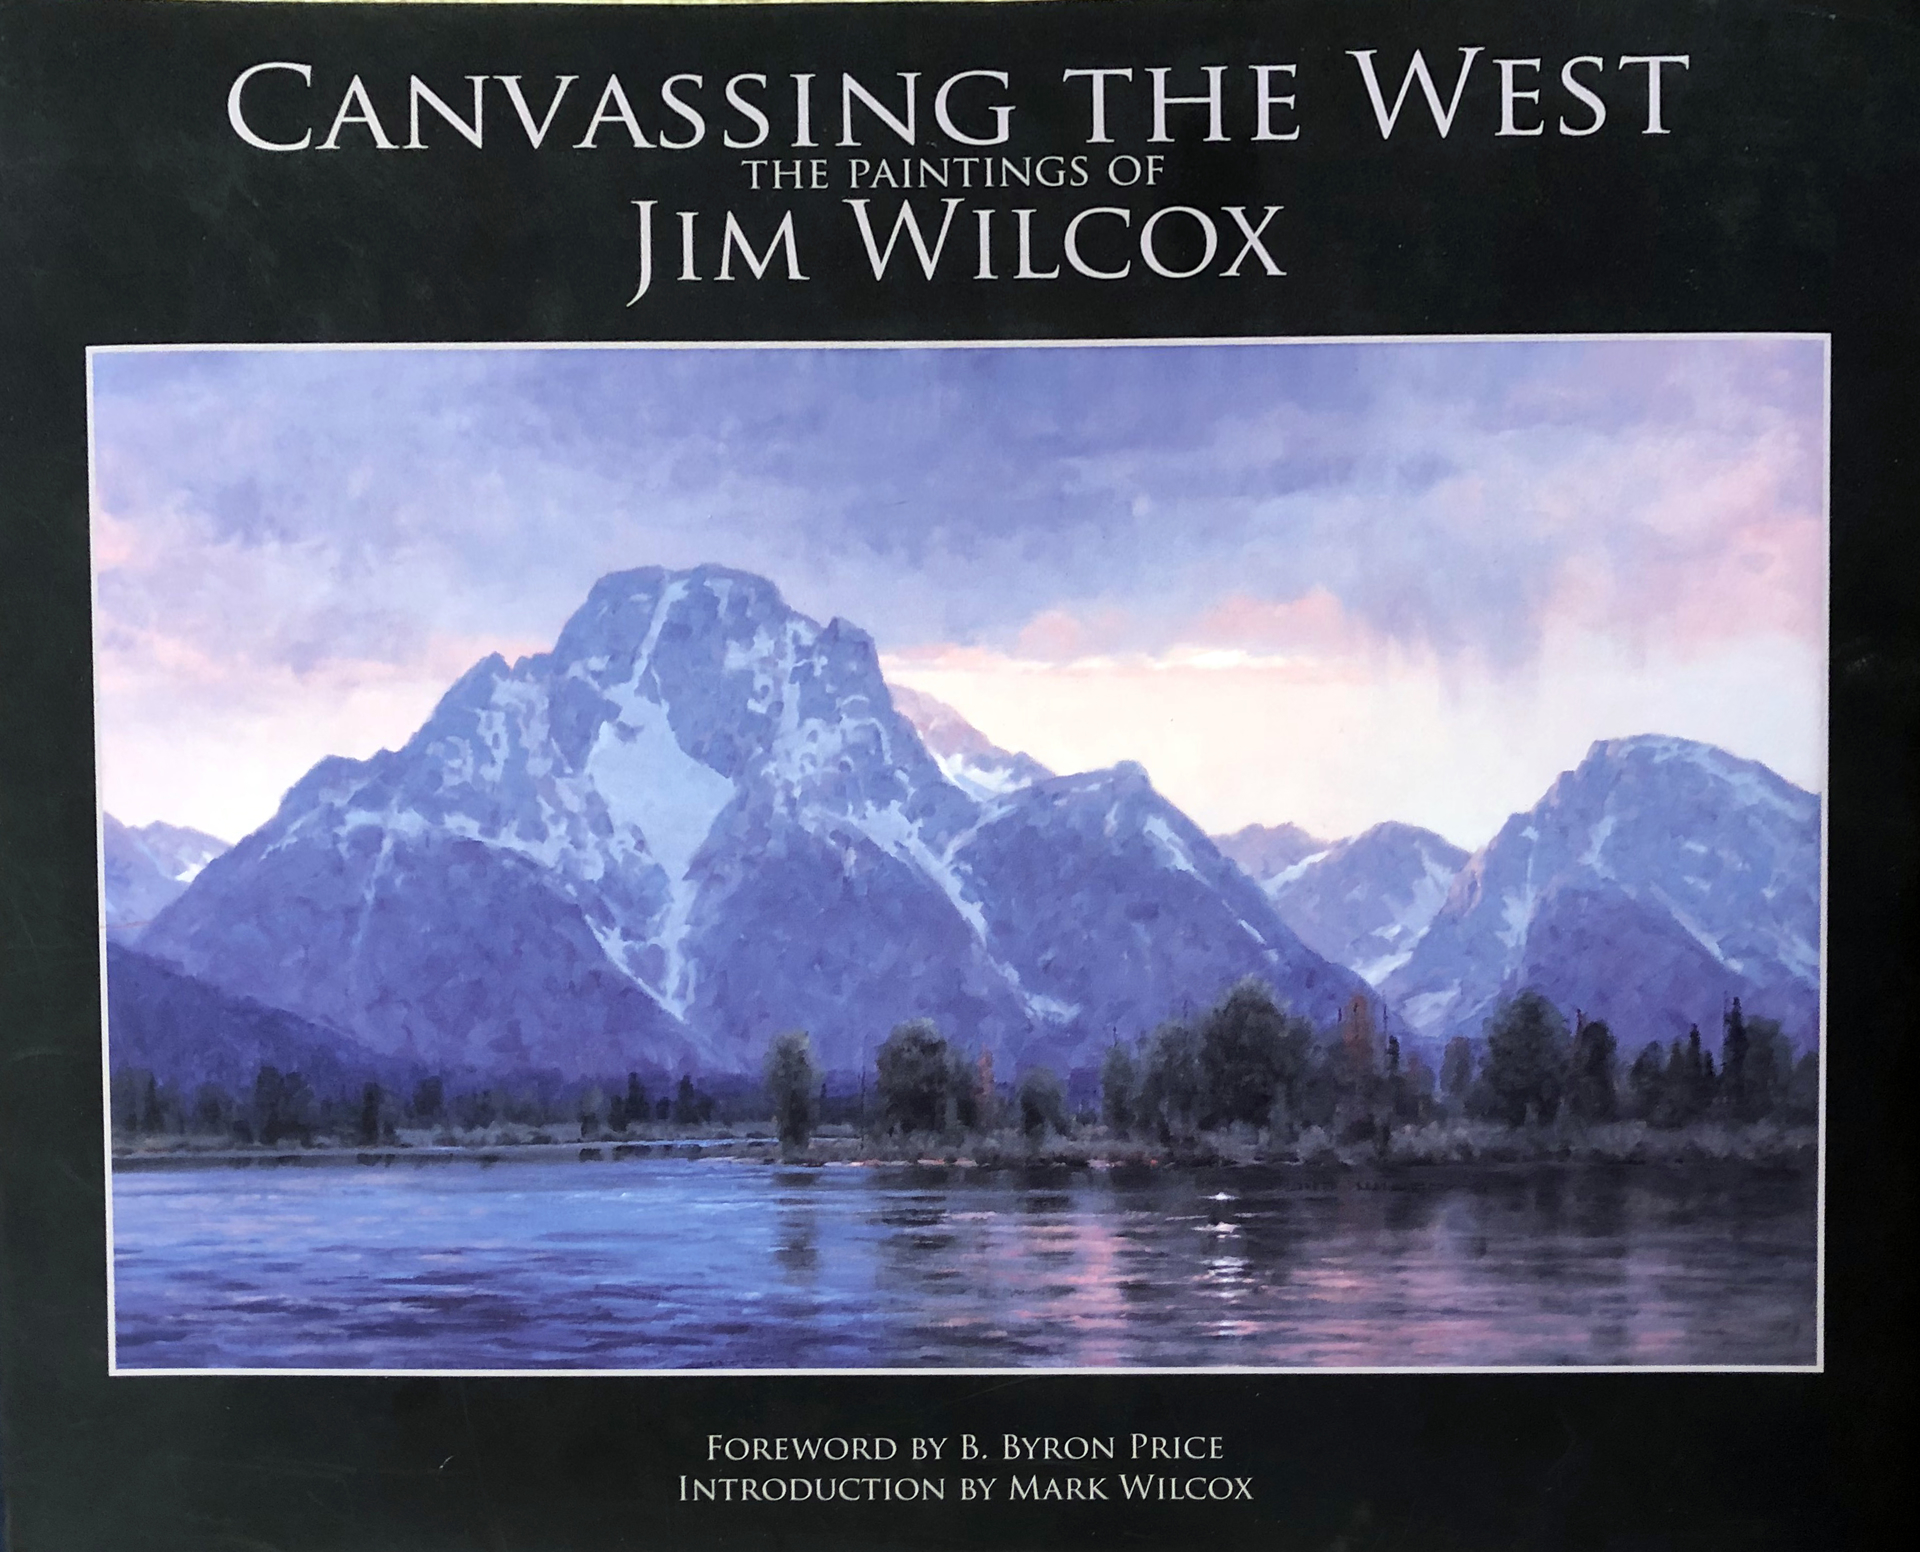 Canvassing the West: The Paintings of Jim Wilcox by Jim Wilcox